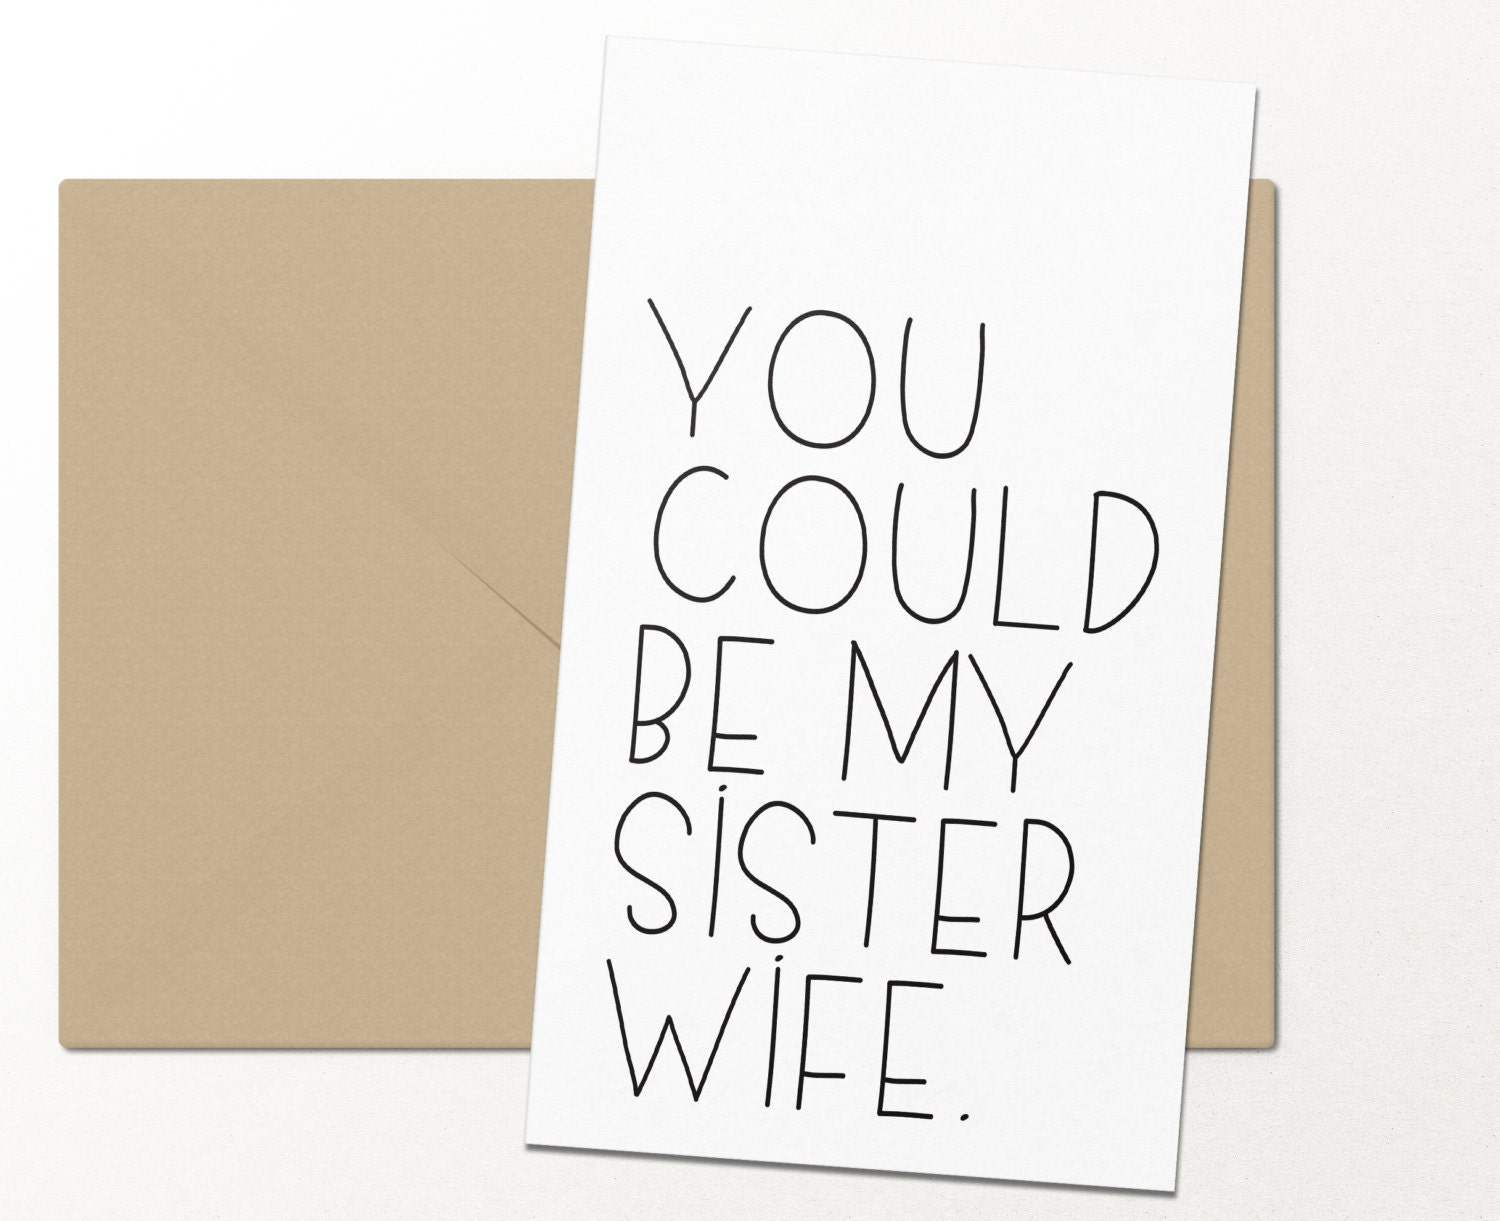 You could be my sister wife funny greeting card love zoom kristyandbryce Image collections